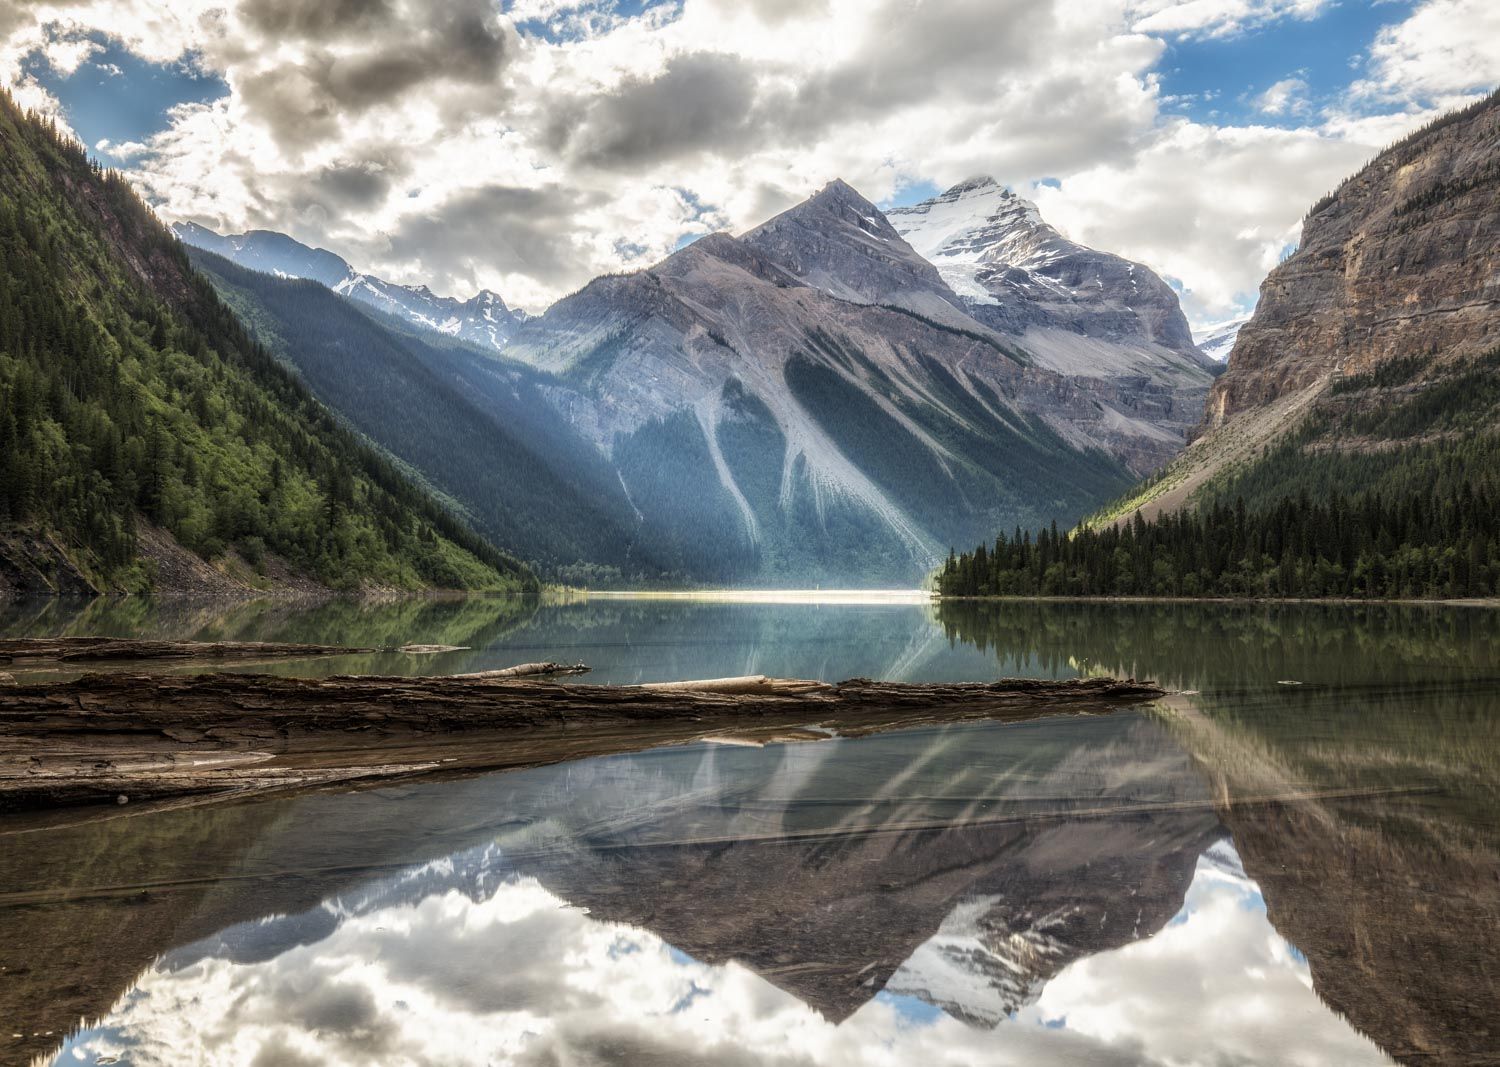 Kinney Lake - Mount Robson Nationalpark, Kanada - Landschaftsfotografie